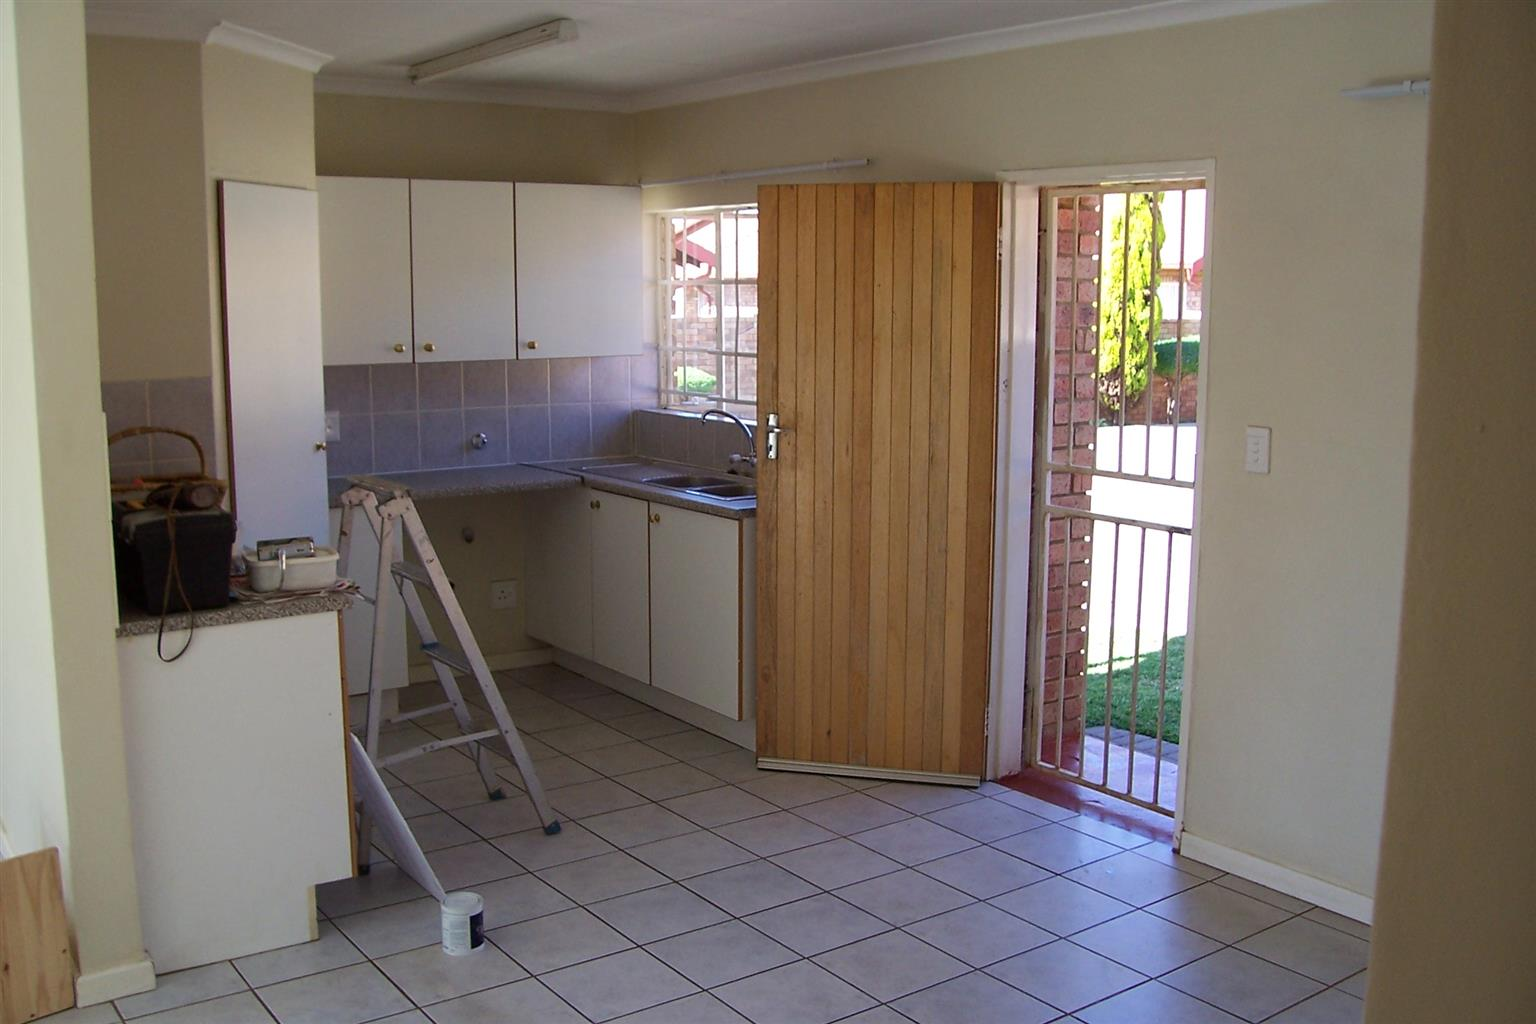 Rent only R5000 for December! Three bedrooms, two bathrooms townhouse to let in Centurion, Highveld